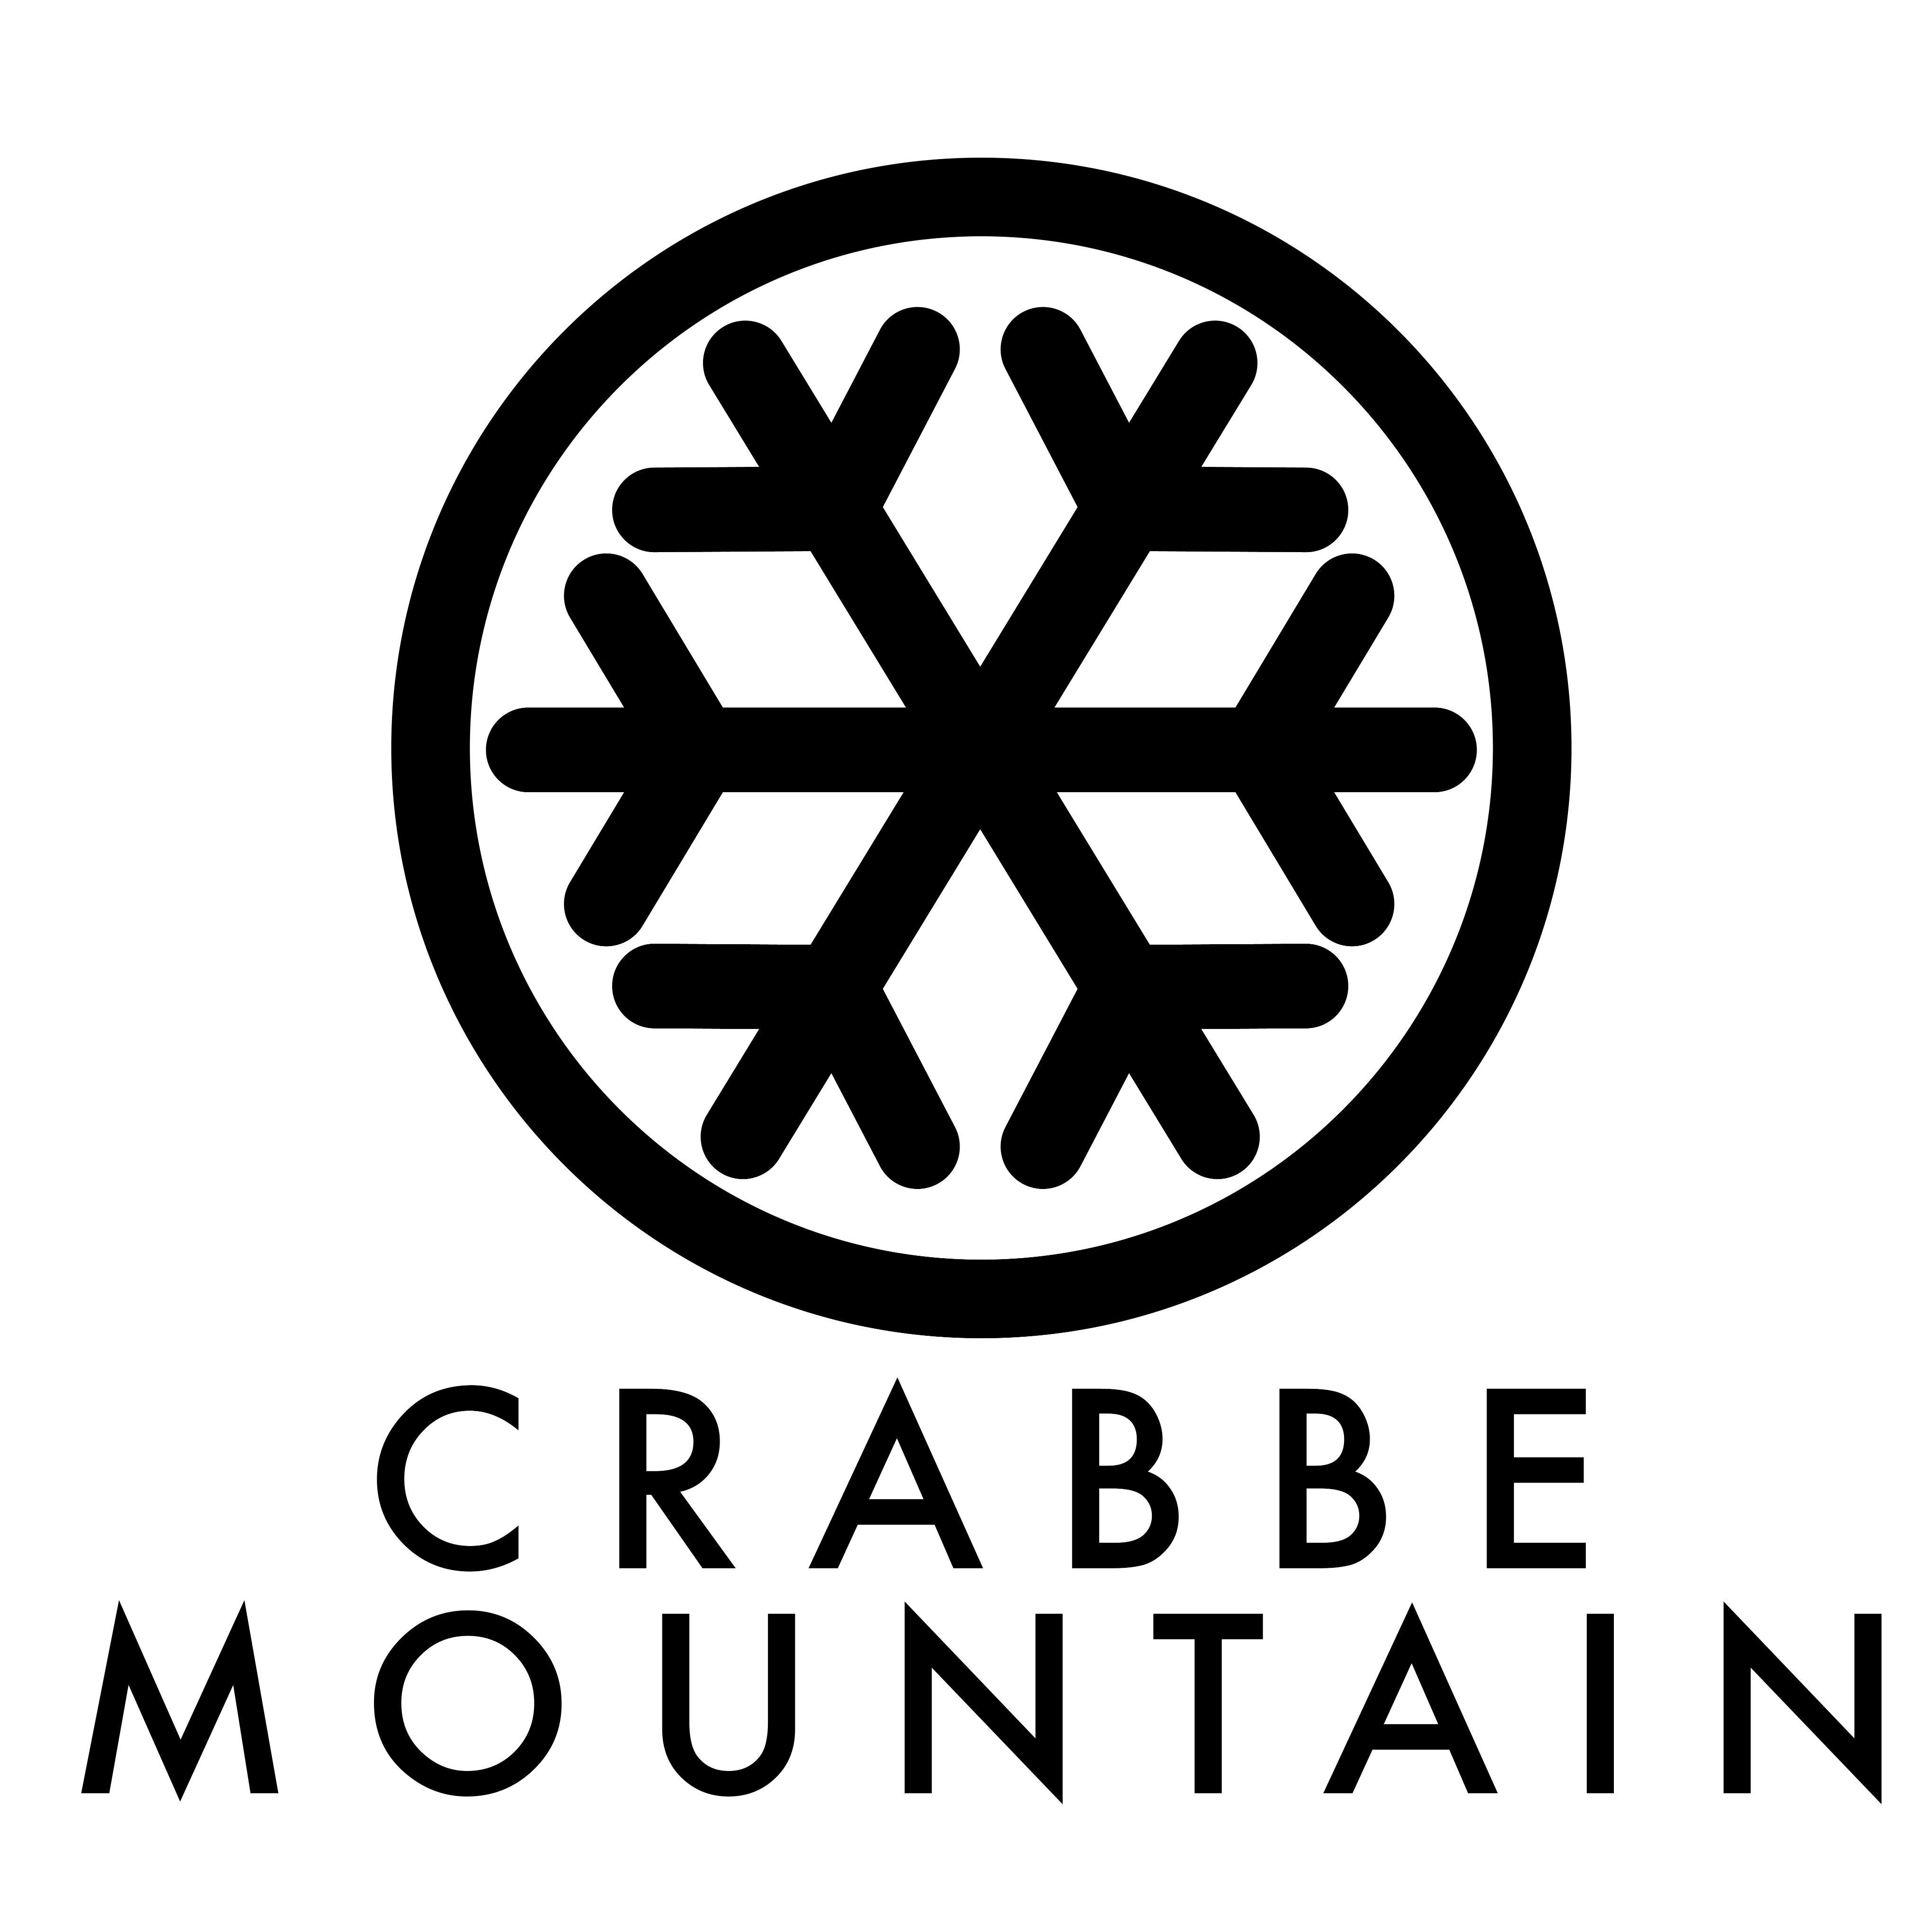 Crabbe mountain on twitter friday january 12th we are closed crabbe mountain buycottarizona